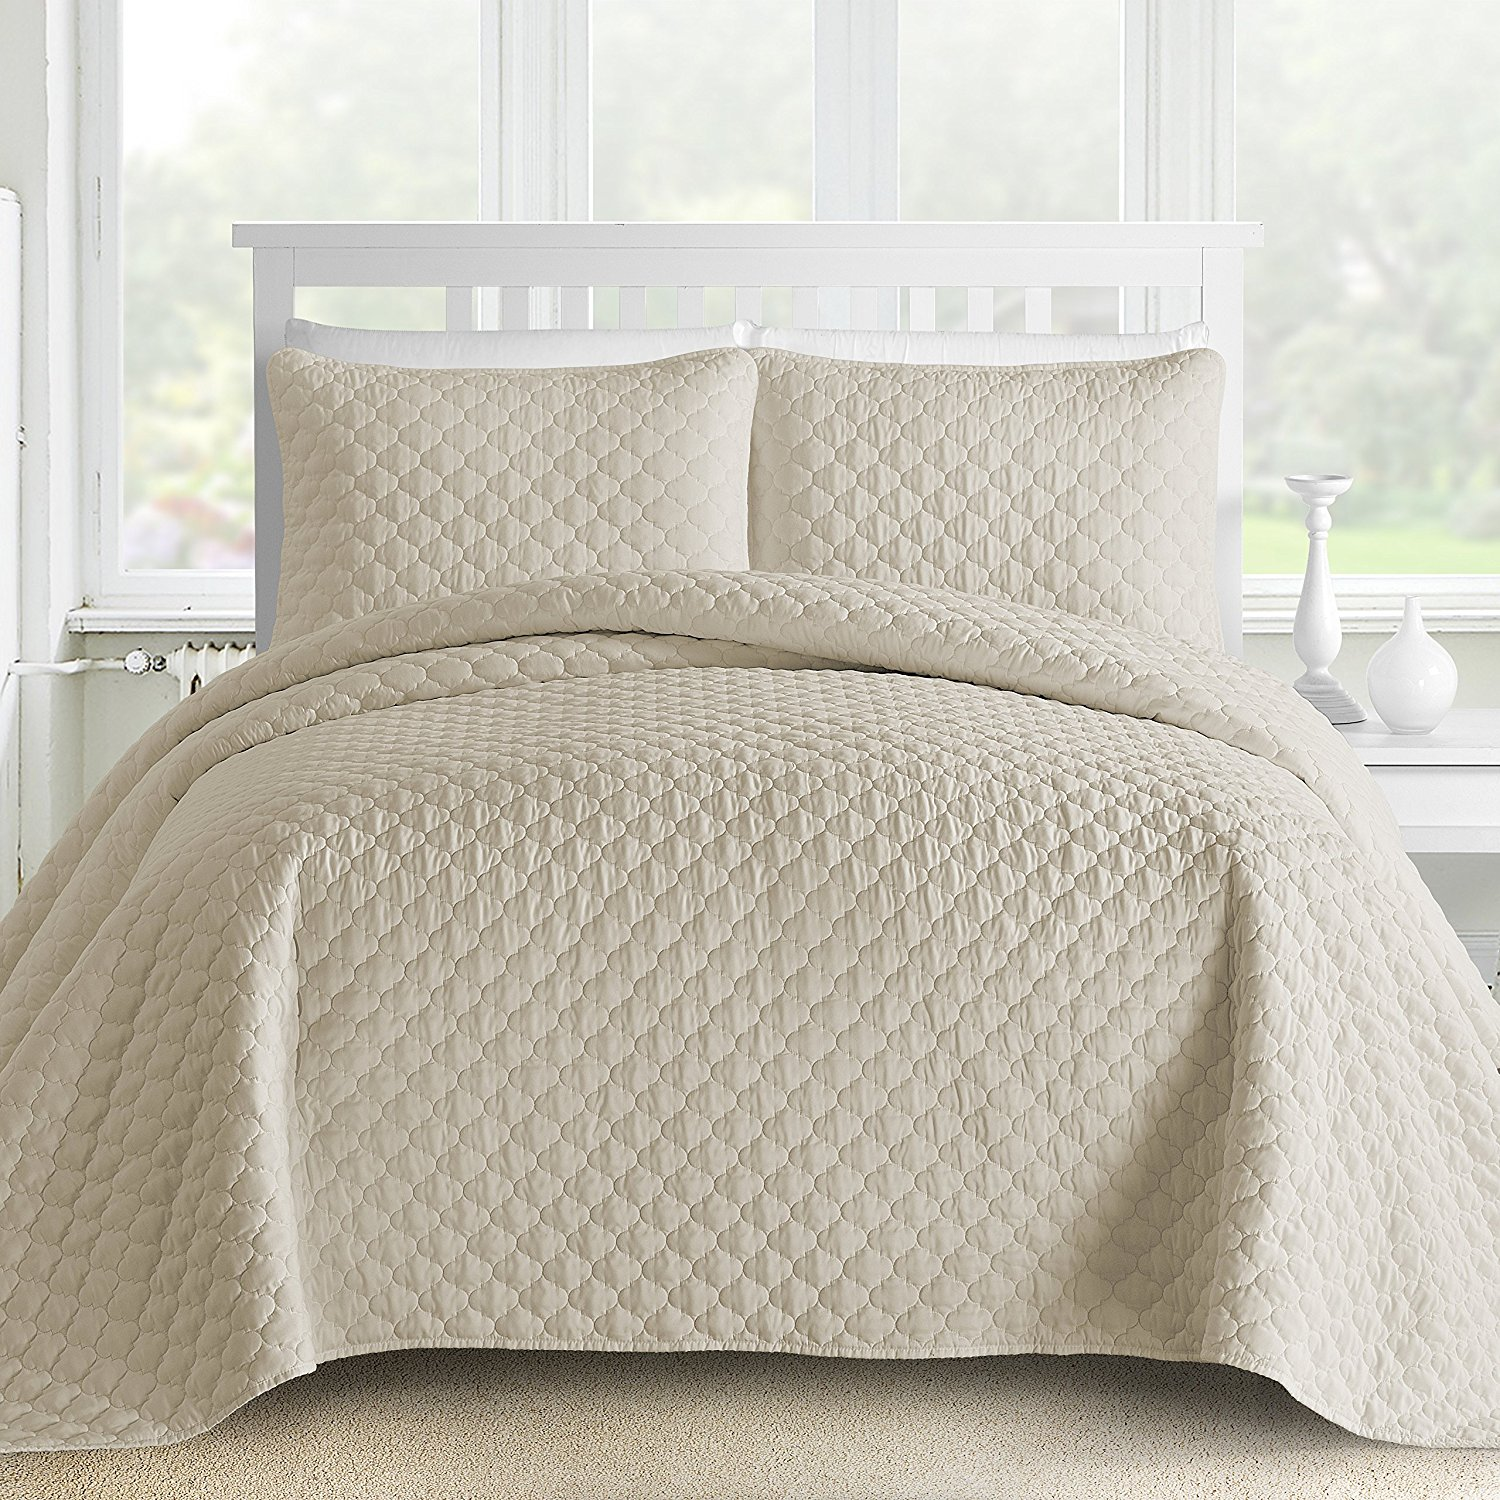 Staniey Collection Gifted Lantern Ogee Quilted 3-piece Coverlet Set